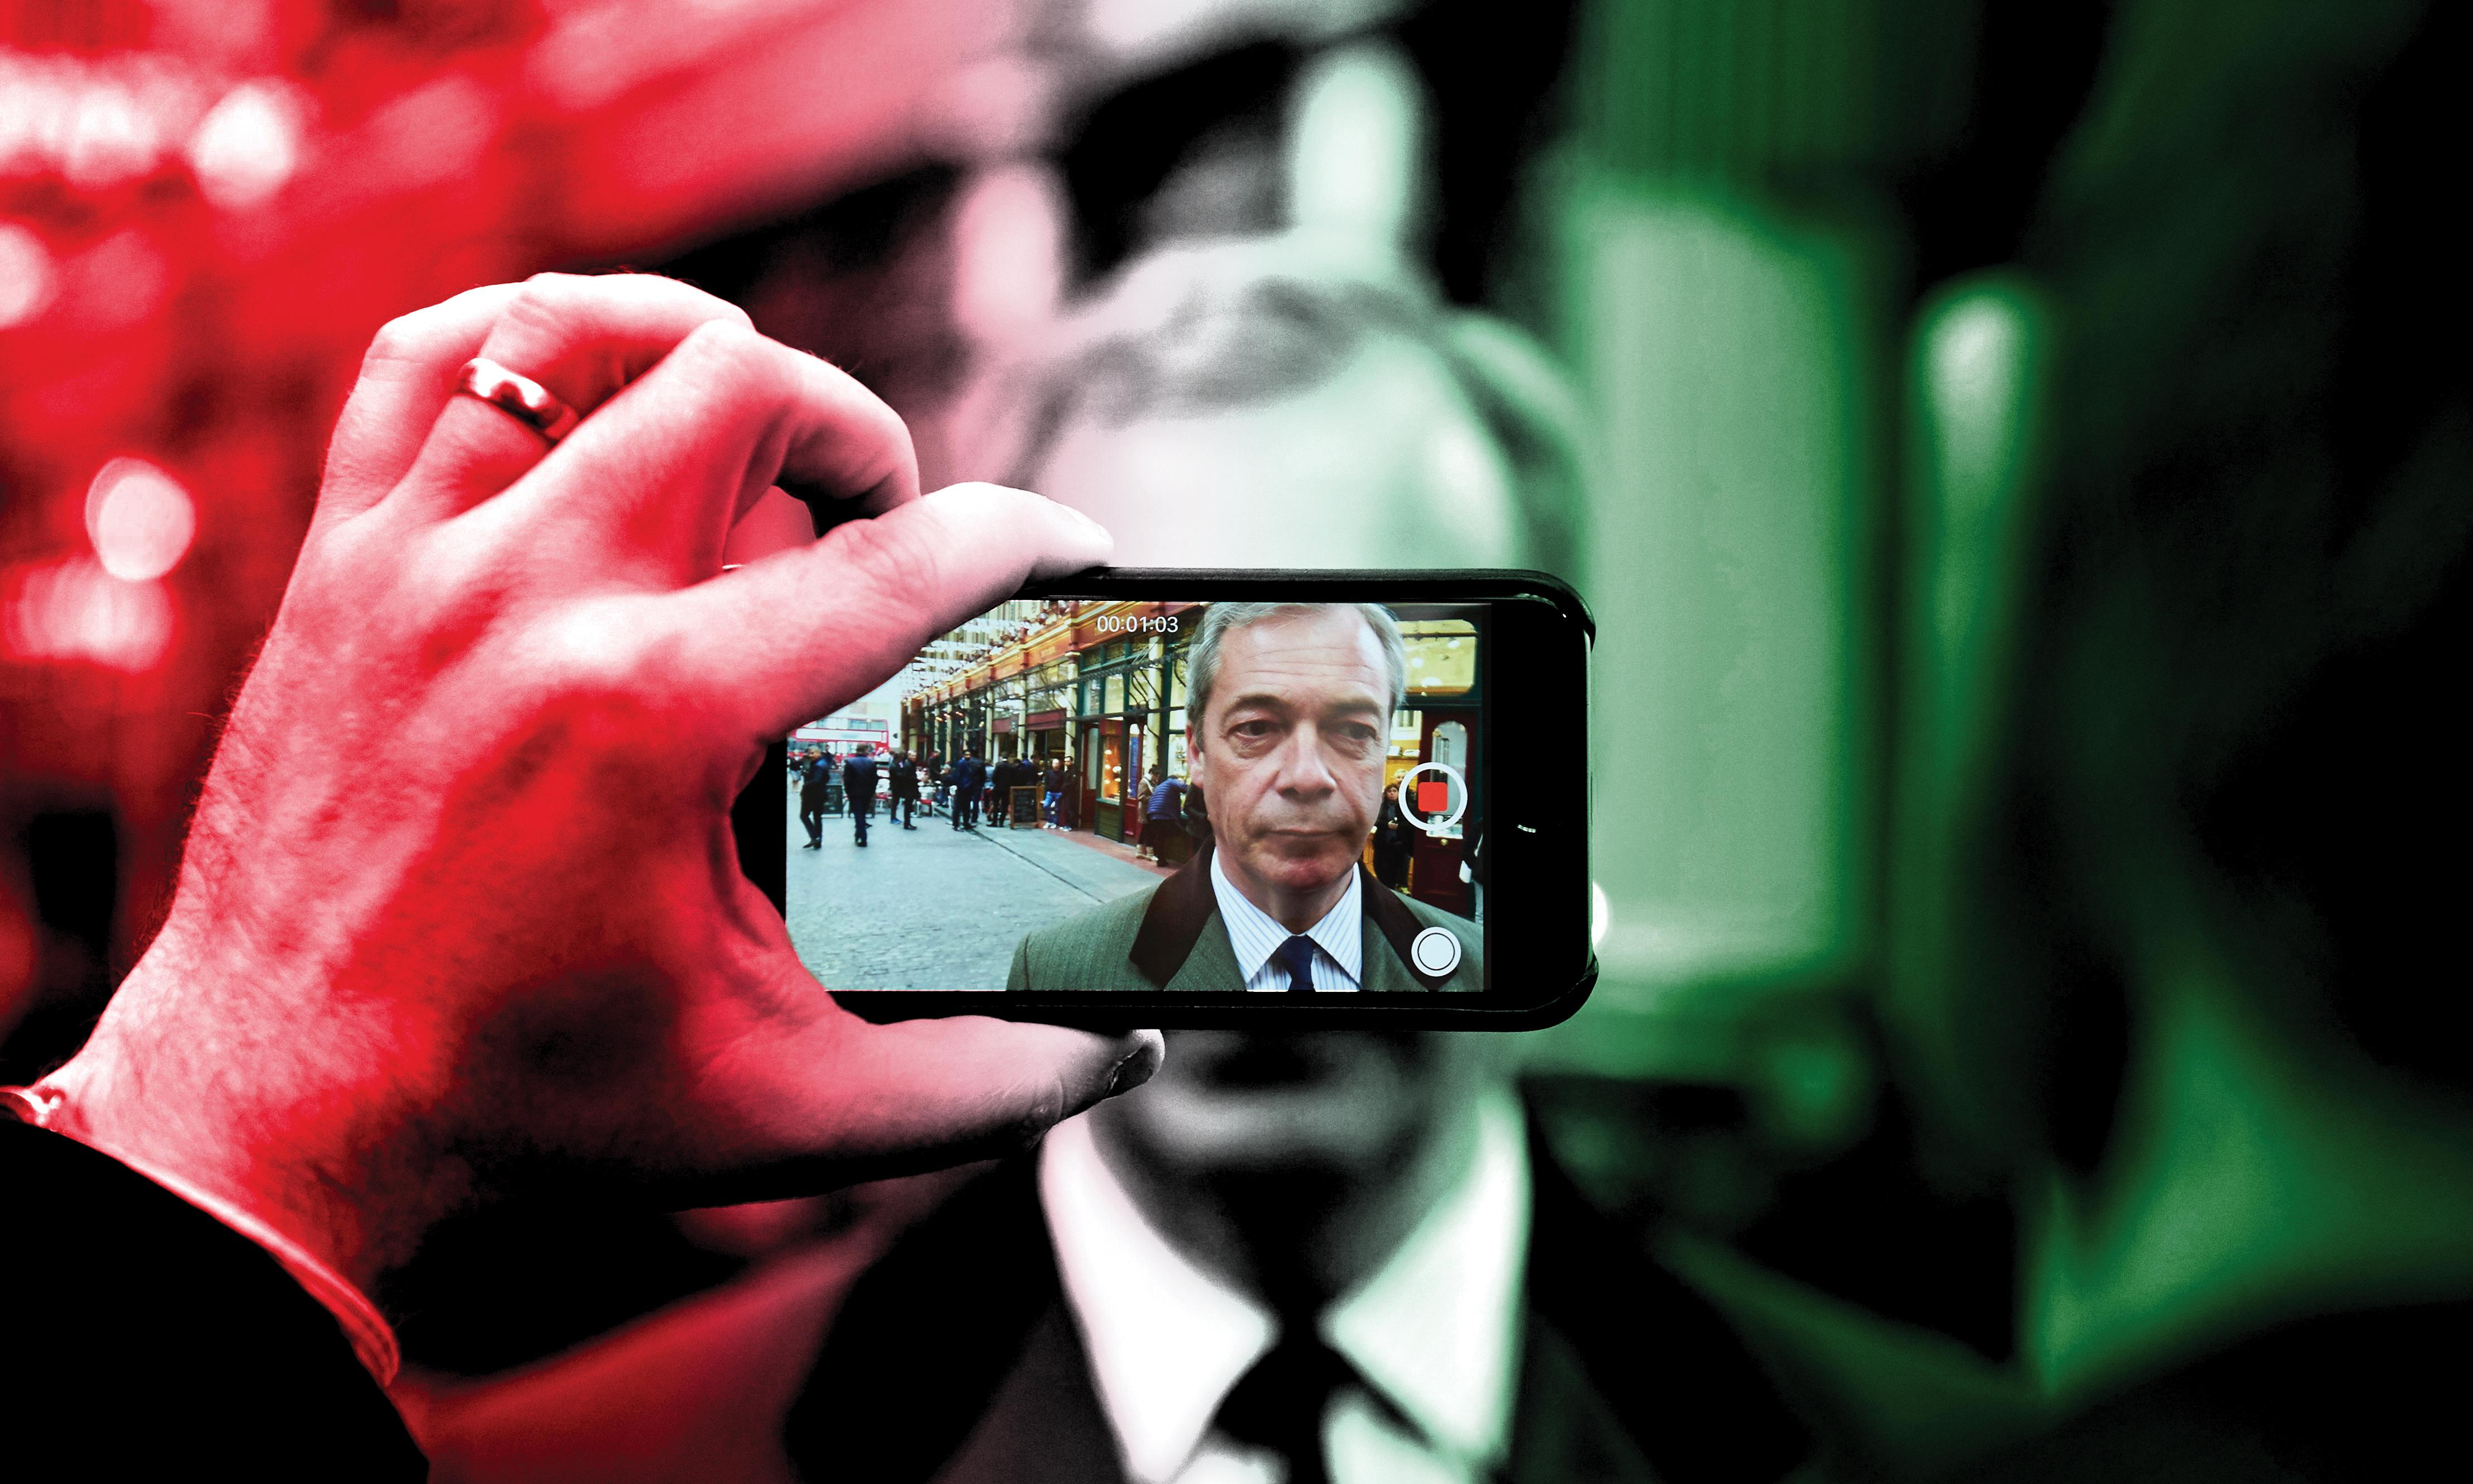 Building the Brexit party: how Nigel Farage copied Italy's digital populists